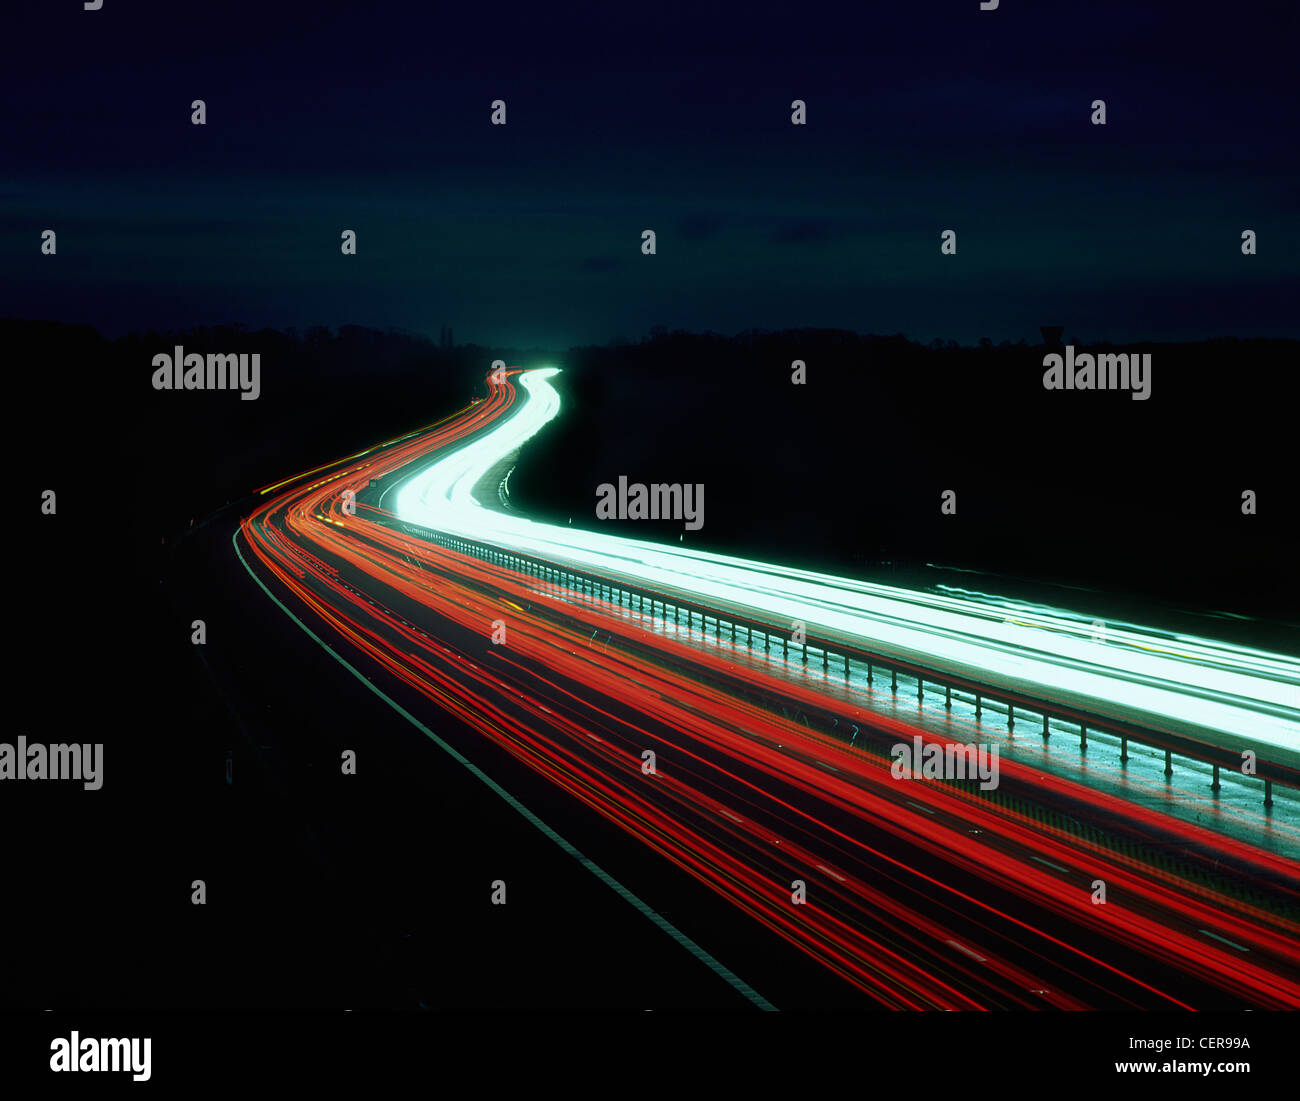 Light trails from traffic on the M11 motorway at night. - Stock Image